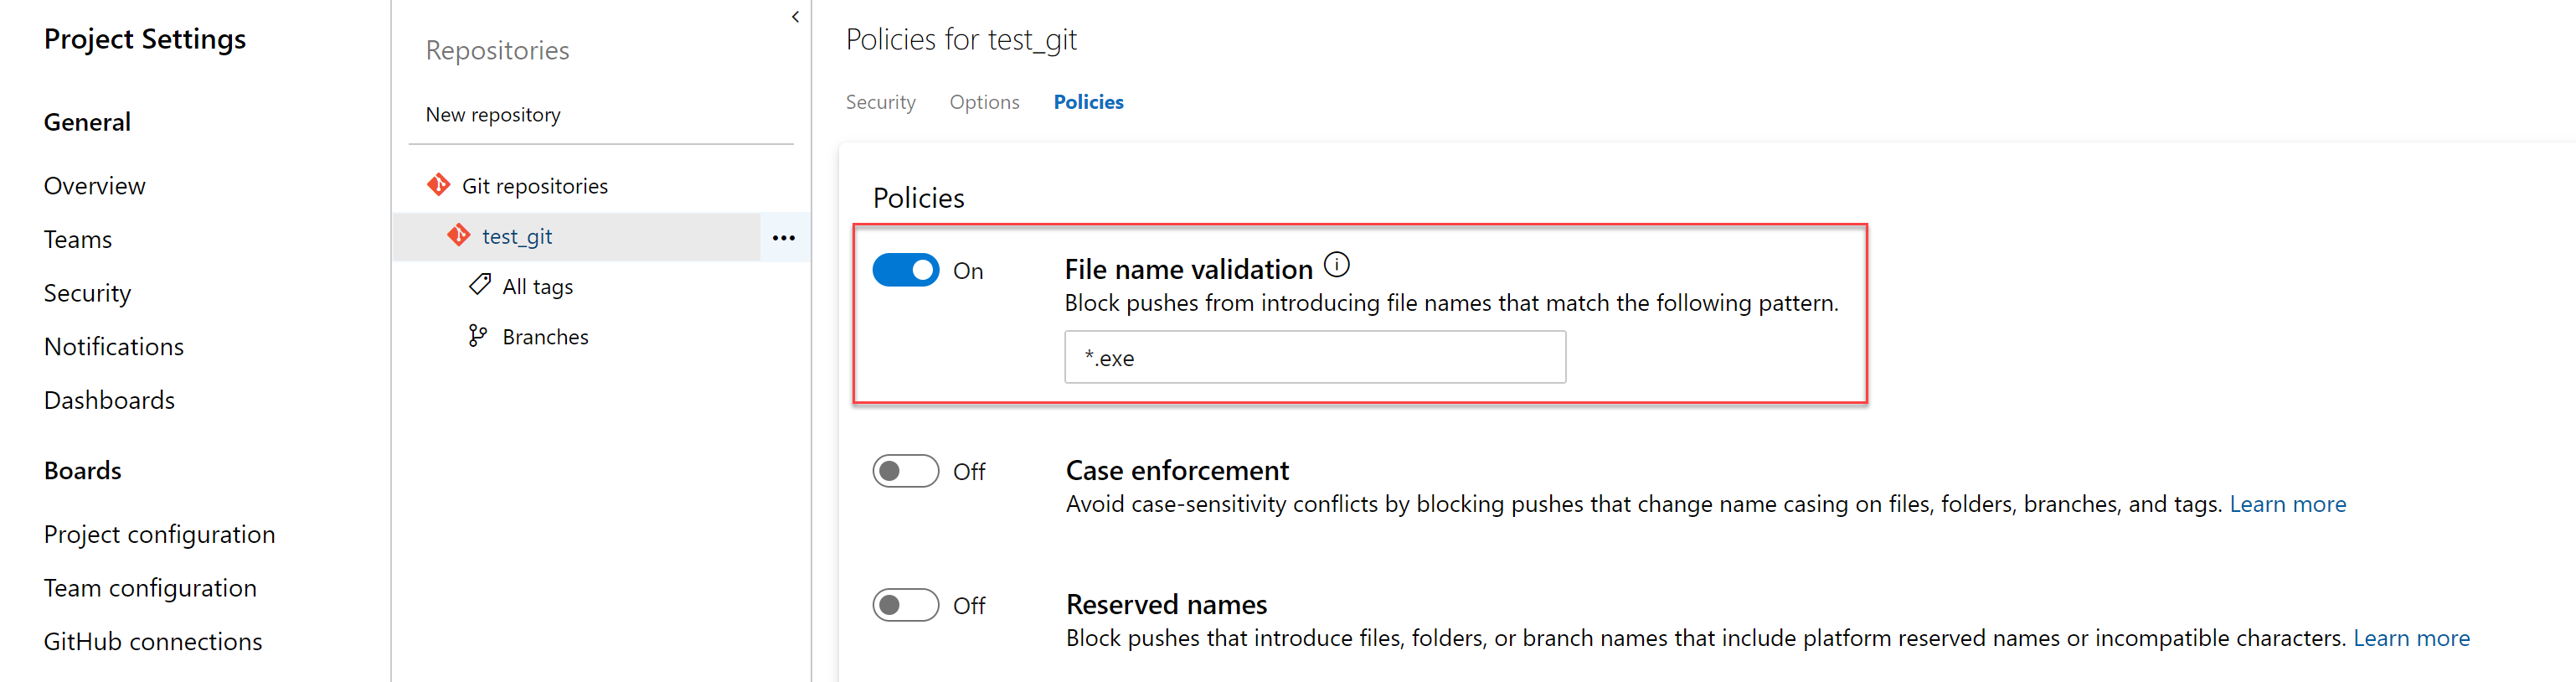 Policy to block files with specified patterns